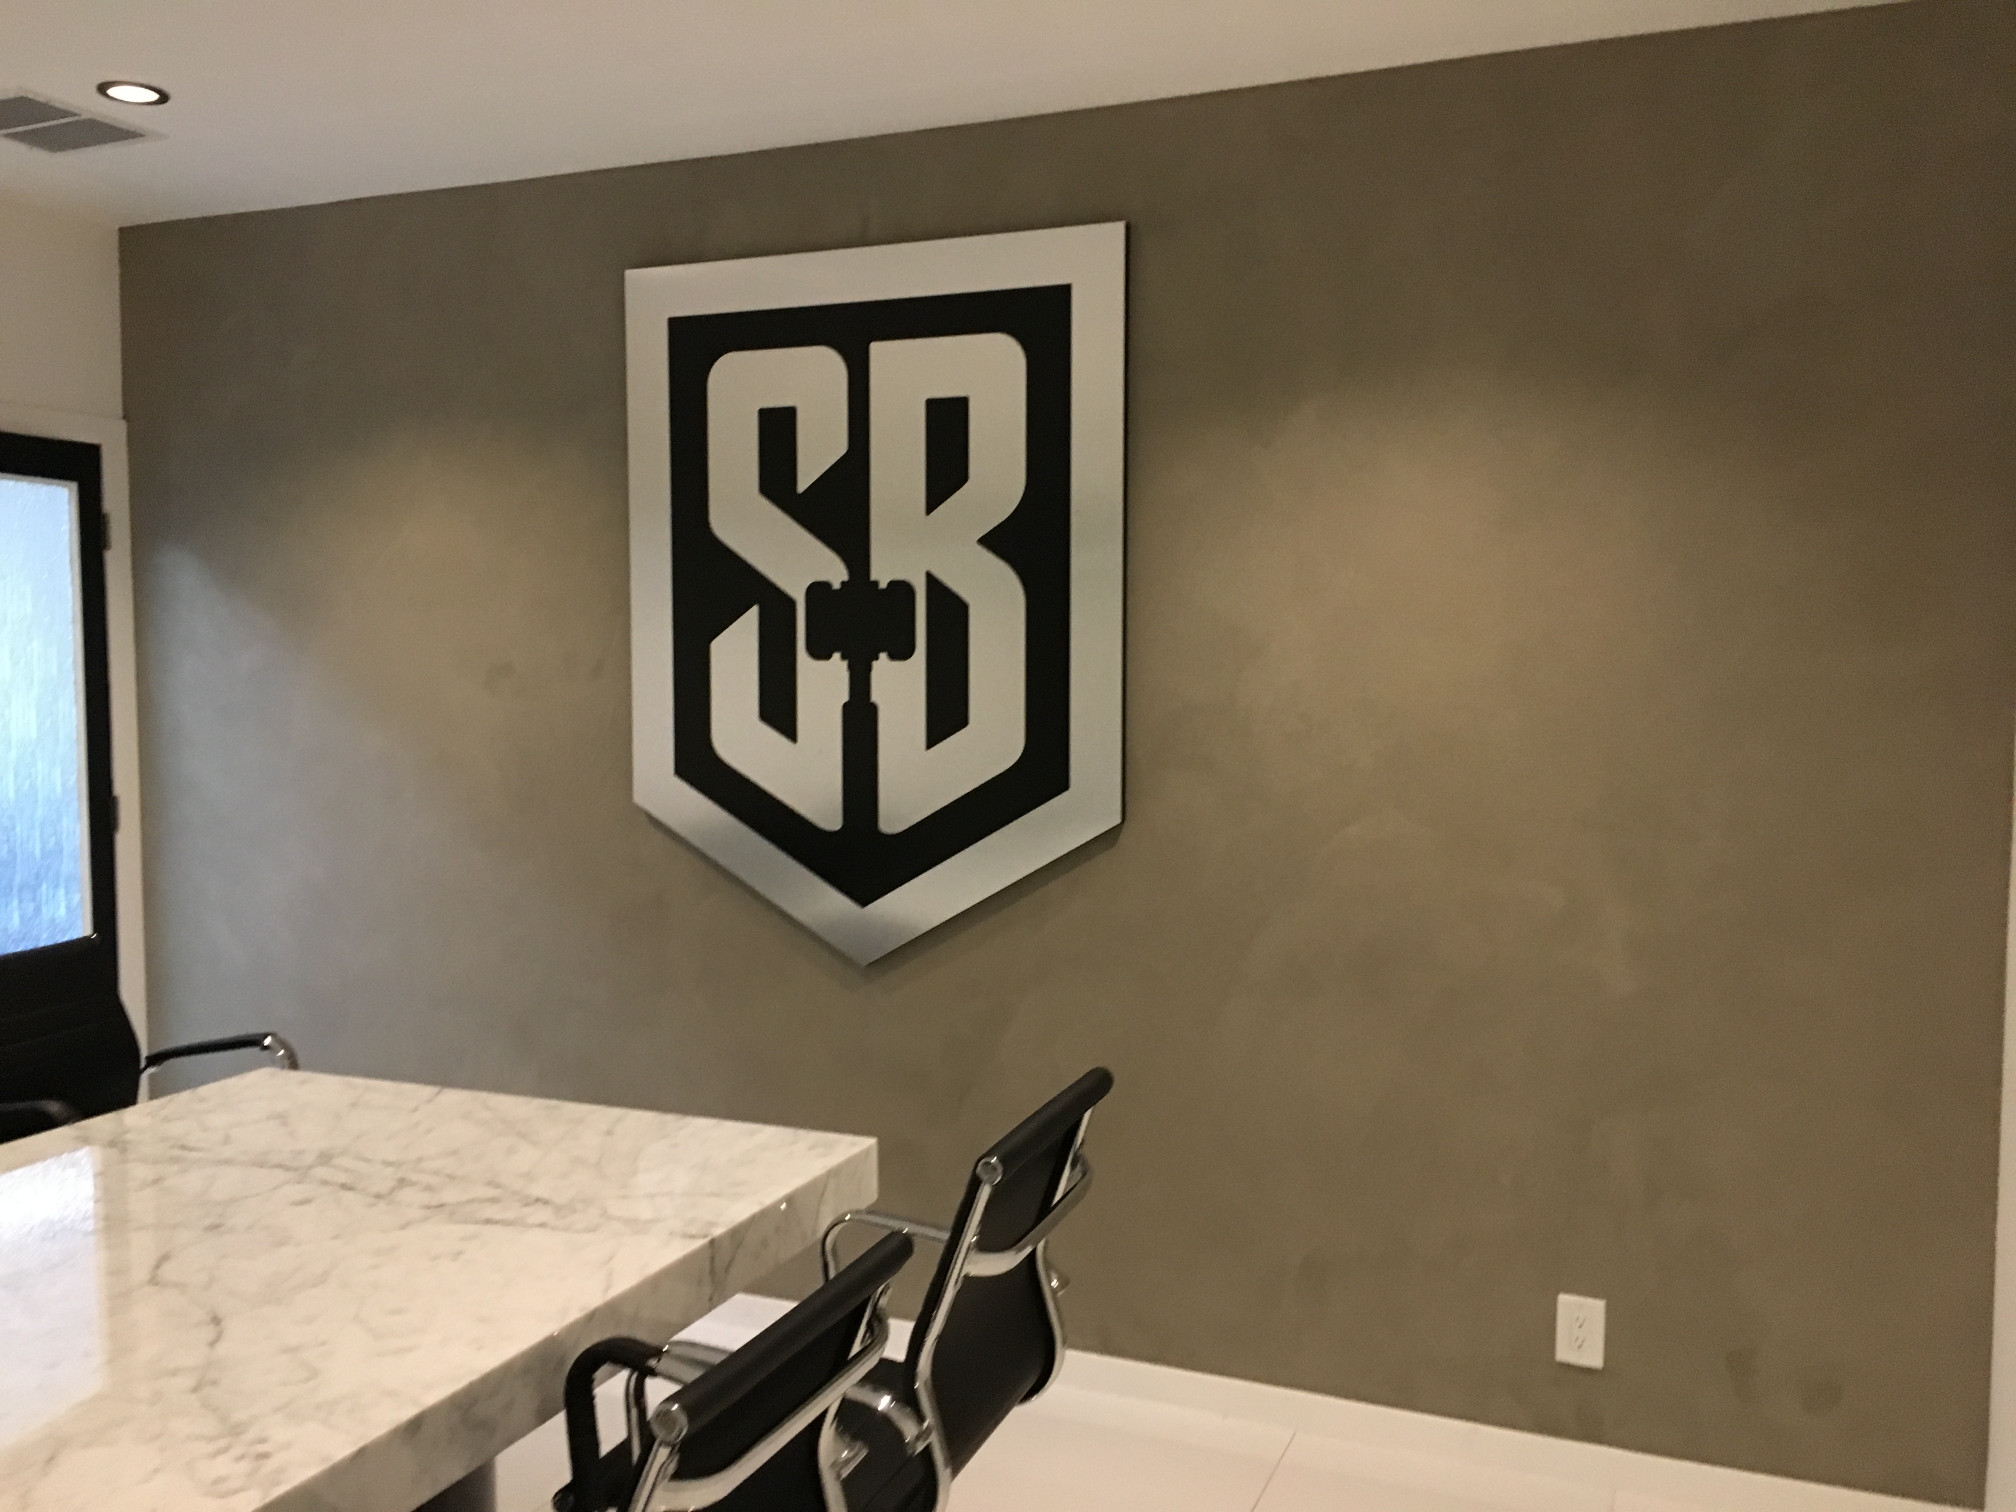 Conference Room Wall Logo